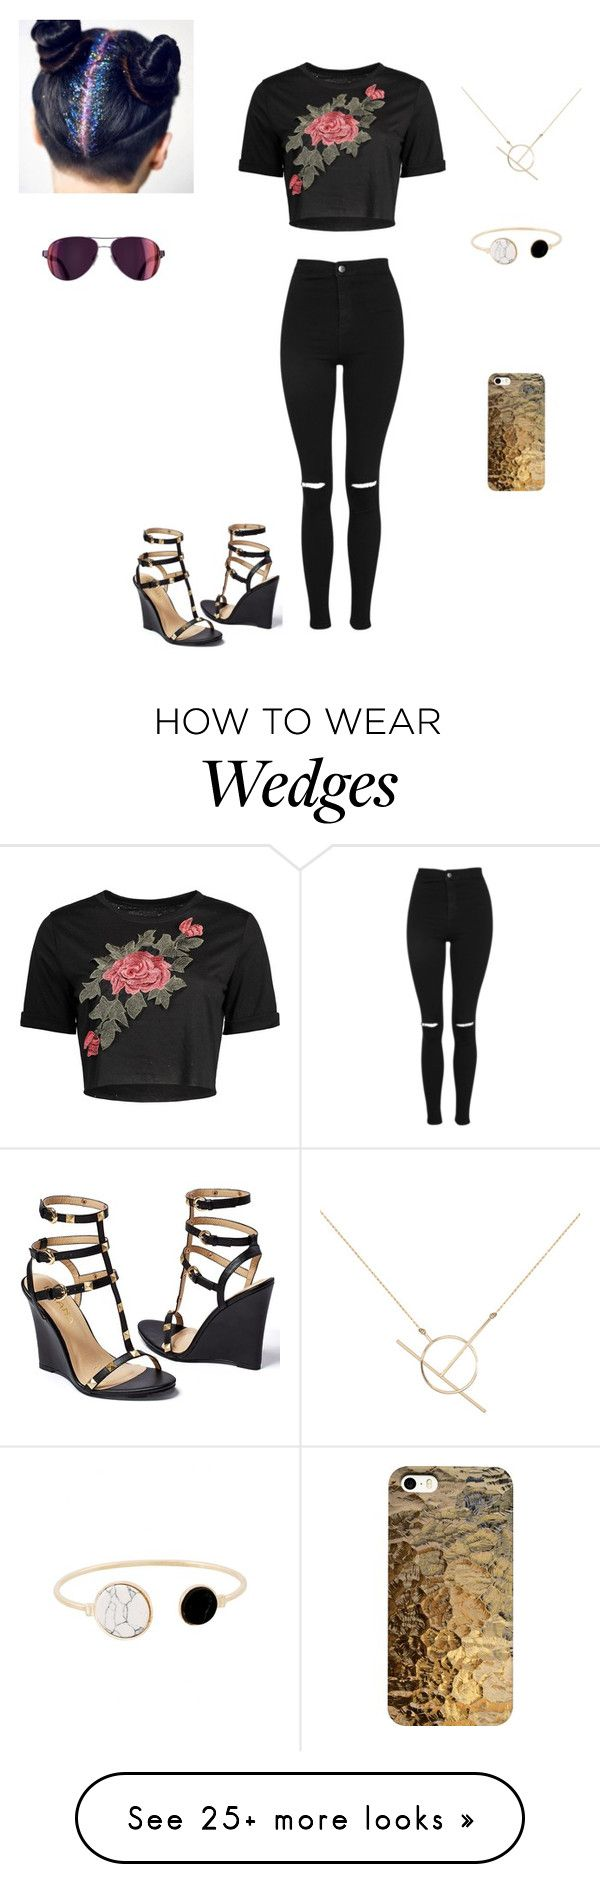 """Tuesday 27th June, 2017."" by jalissaj on Polyvore featuring Venus, Topshop and A Weathered Penny"